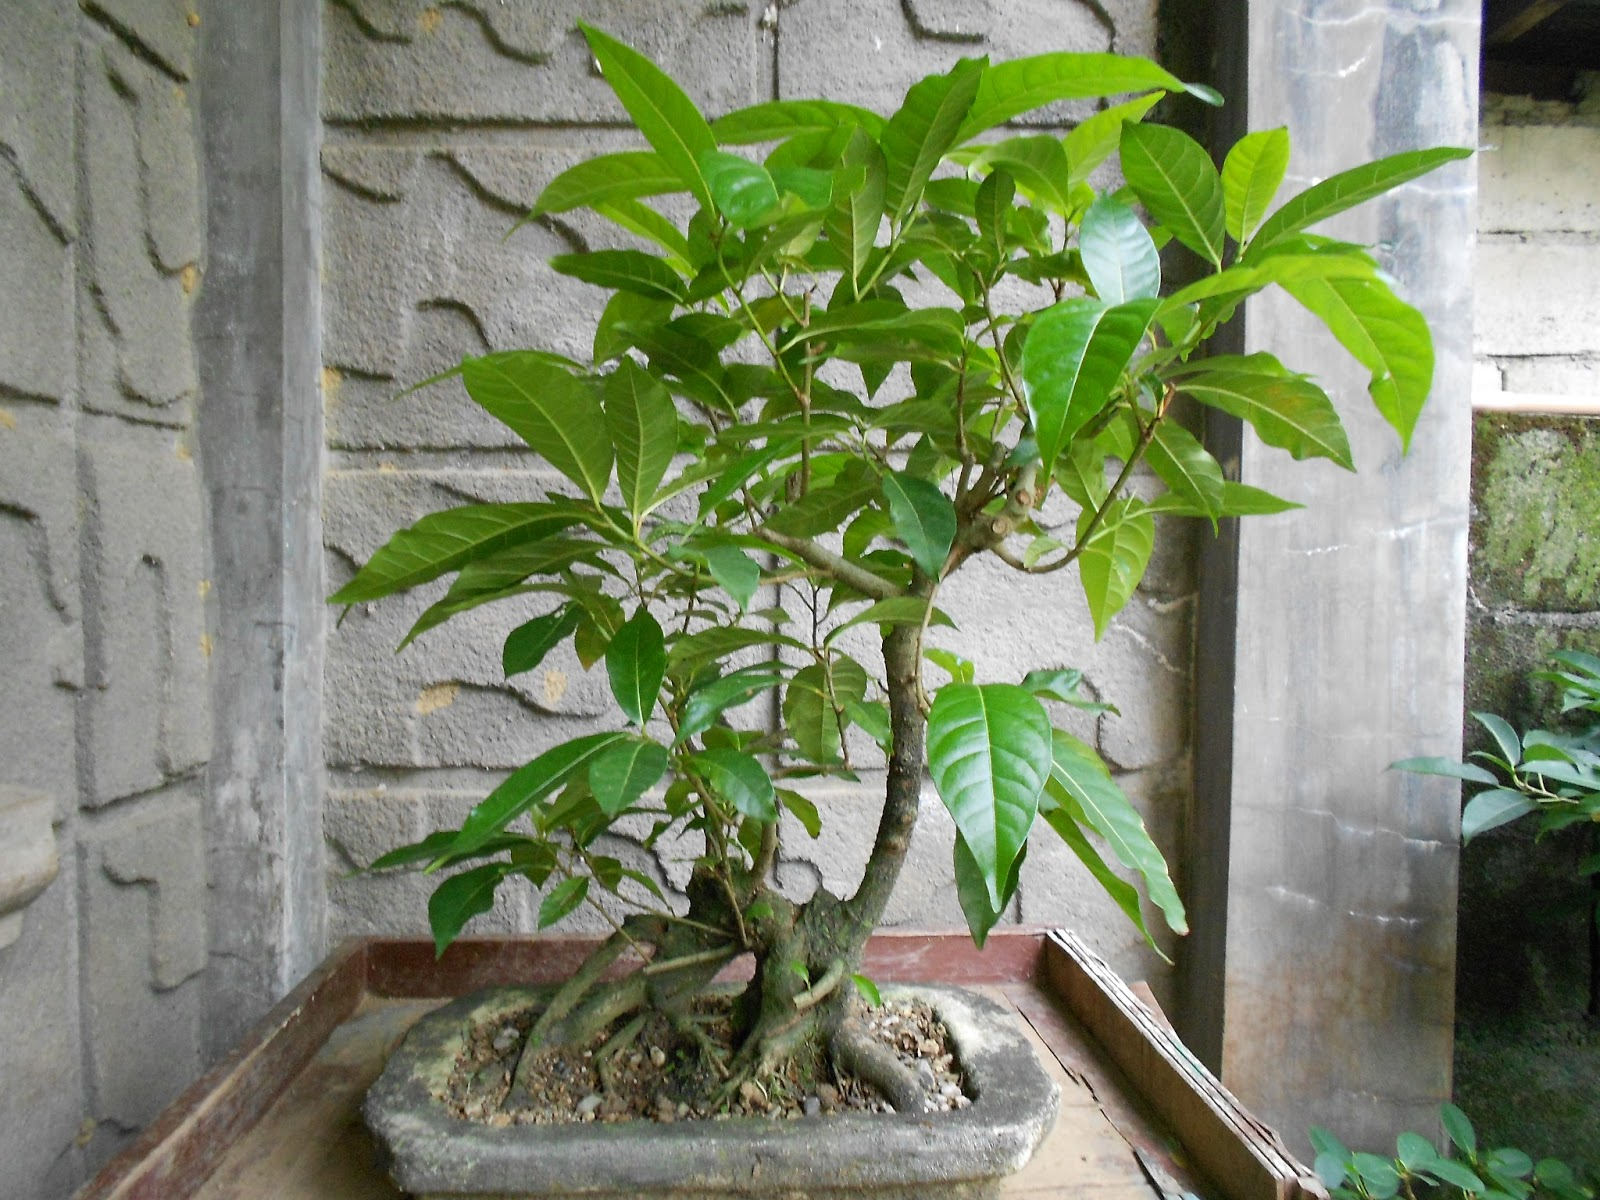 BONSAI ART AND HOME GARDENING GROWING LARGE LEAVED TREES FOR BONSAI